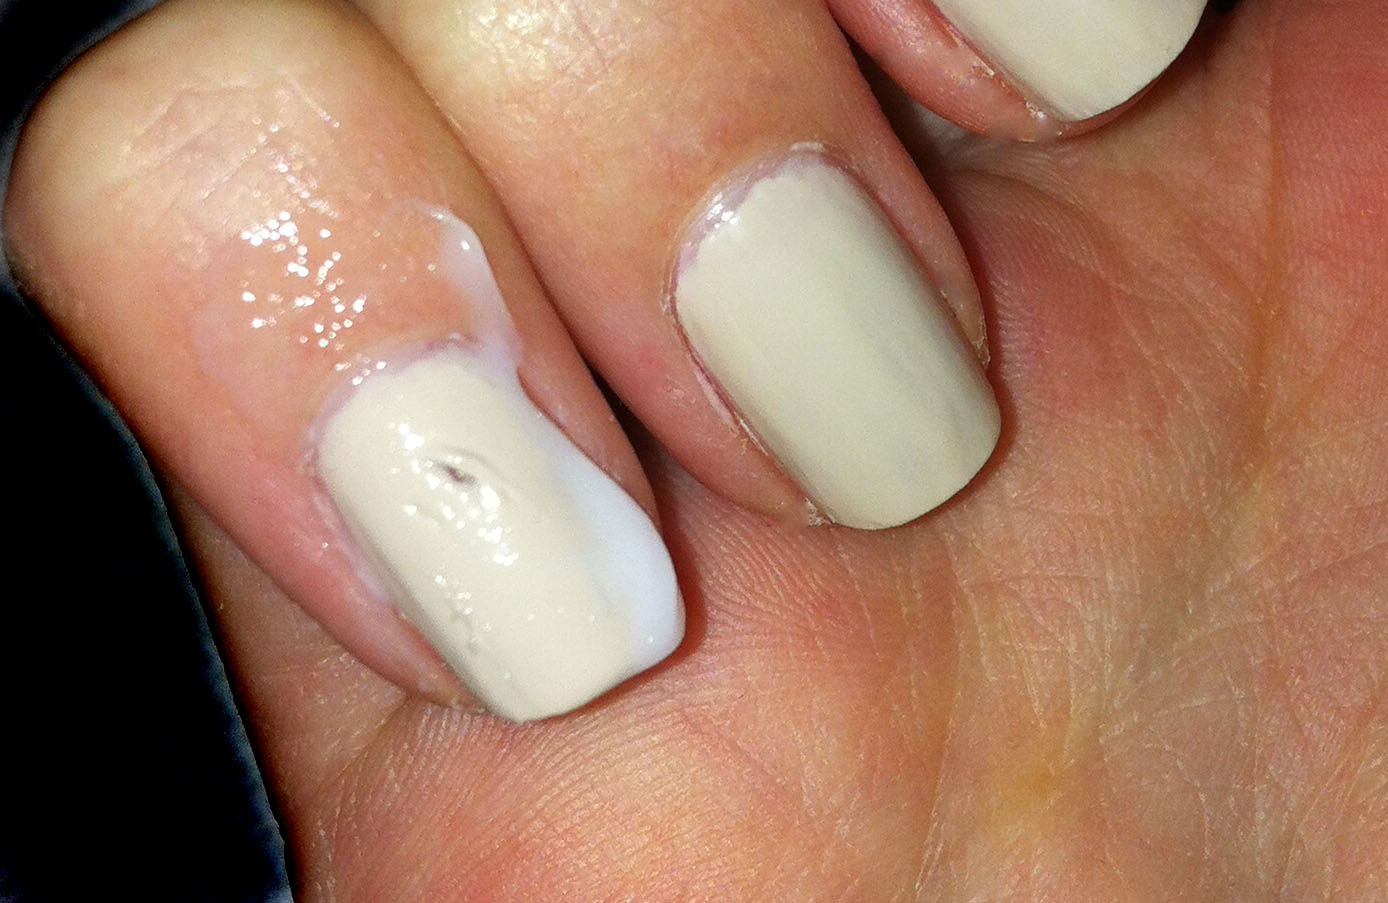 Makeup-Of-Mine: A great way to repair smudged or dented nail varnish!